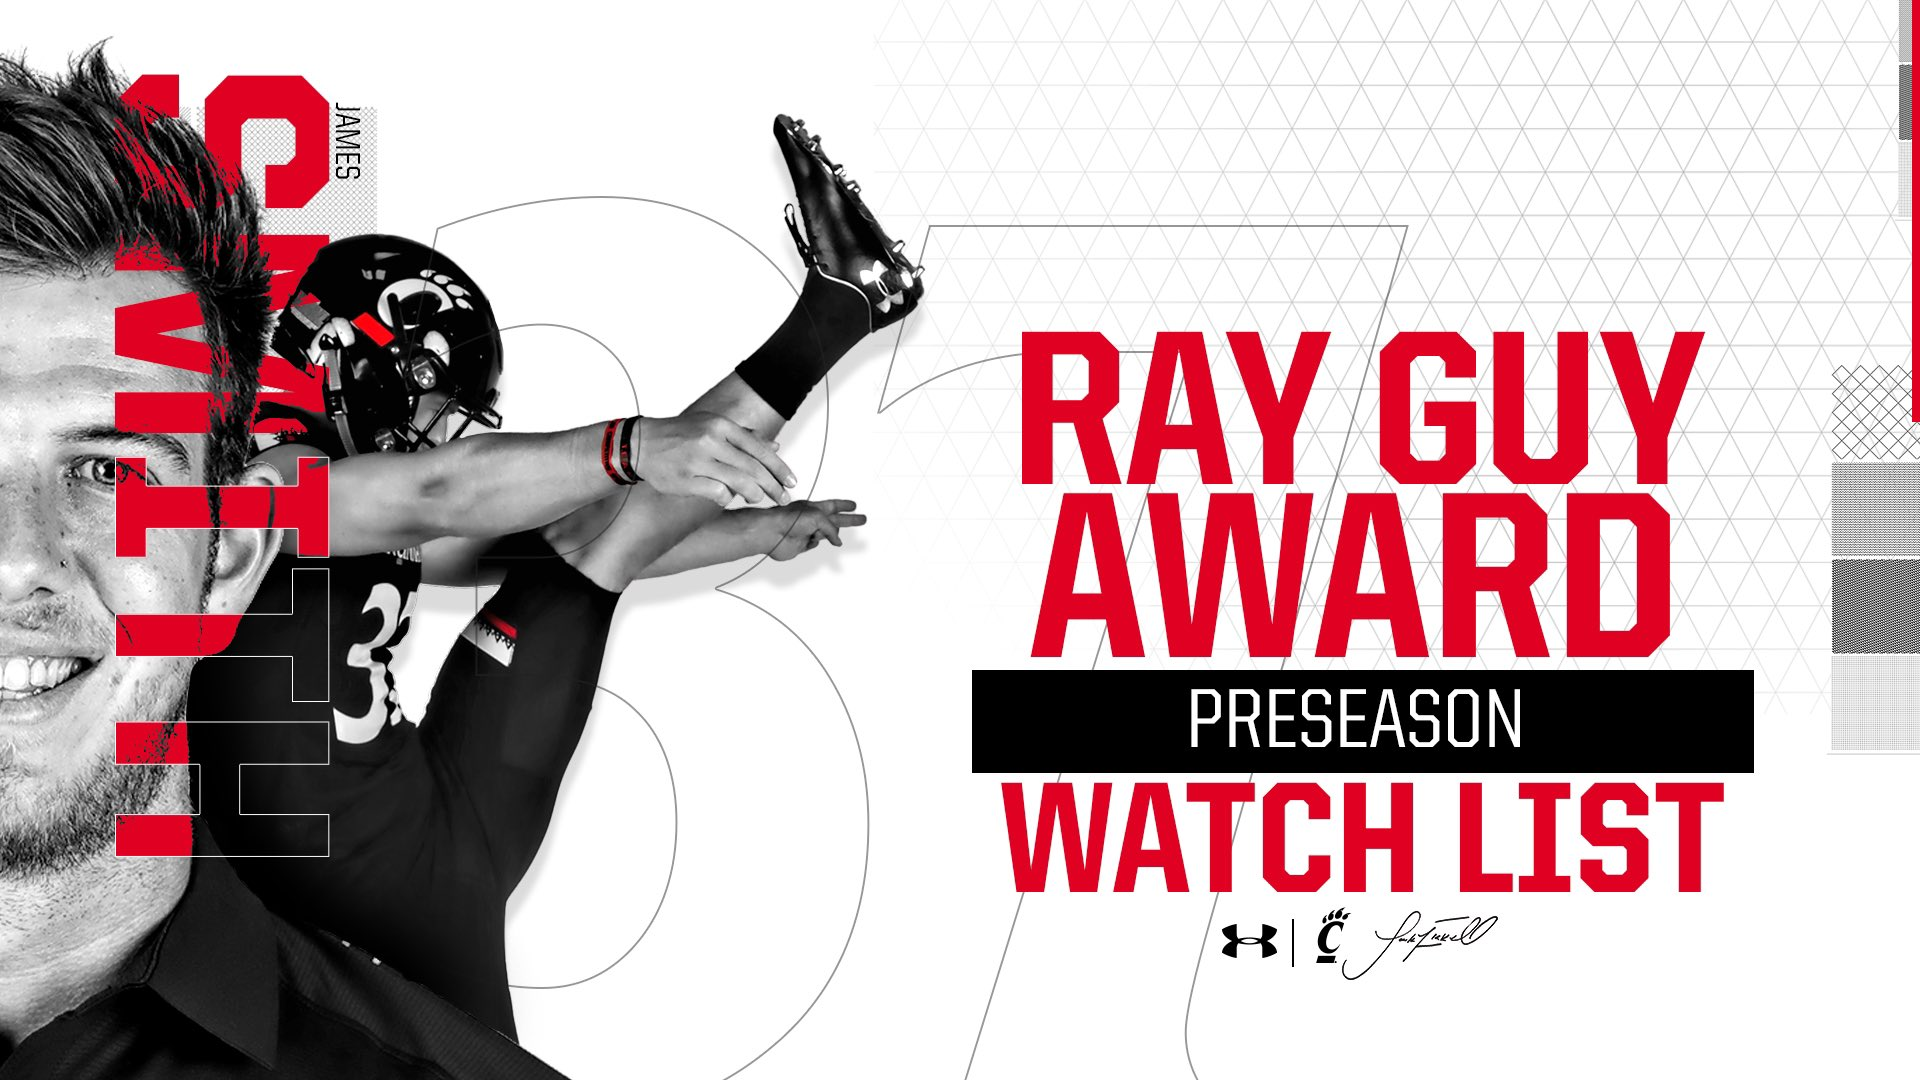 James Smith Named To Ray Guy Award Watch List - University of